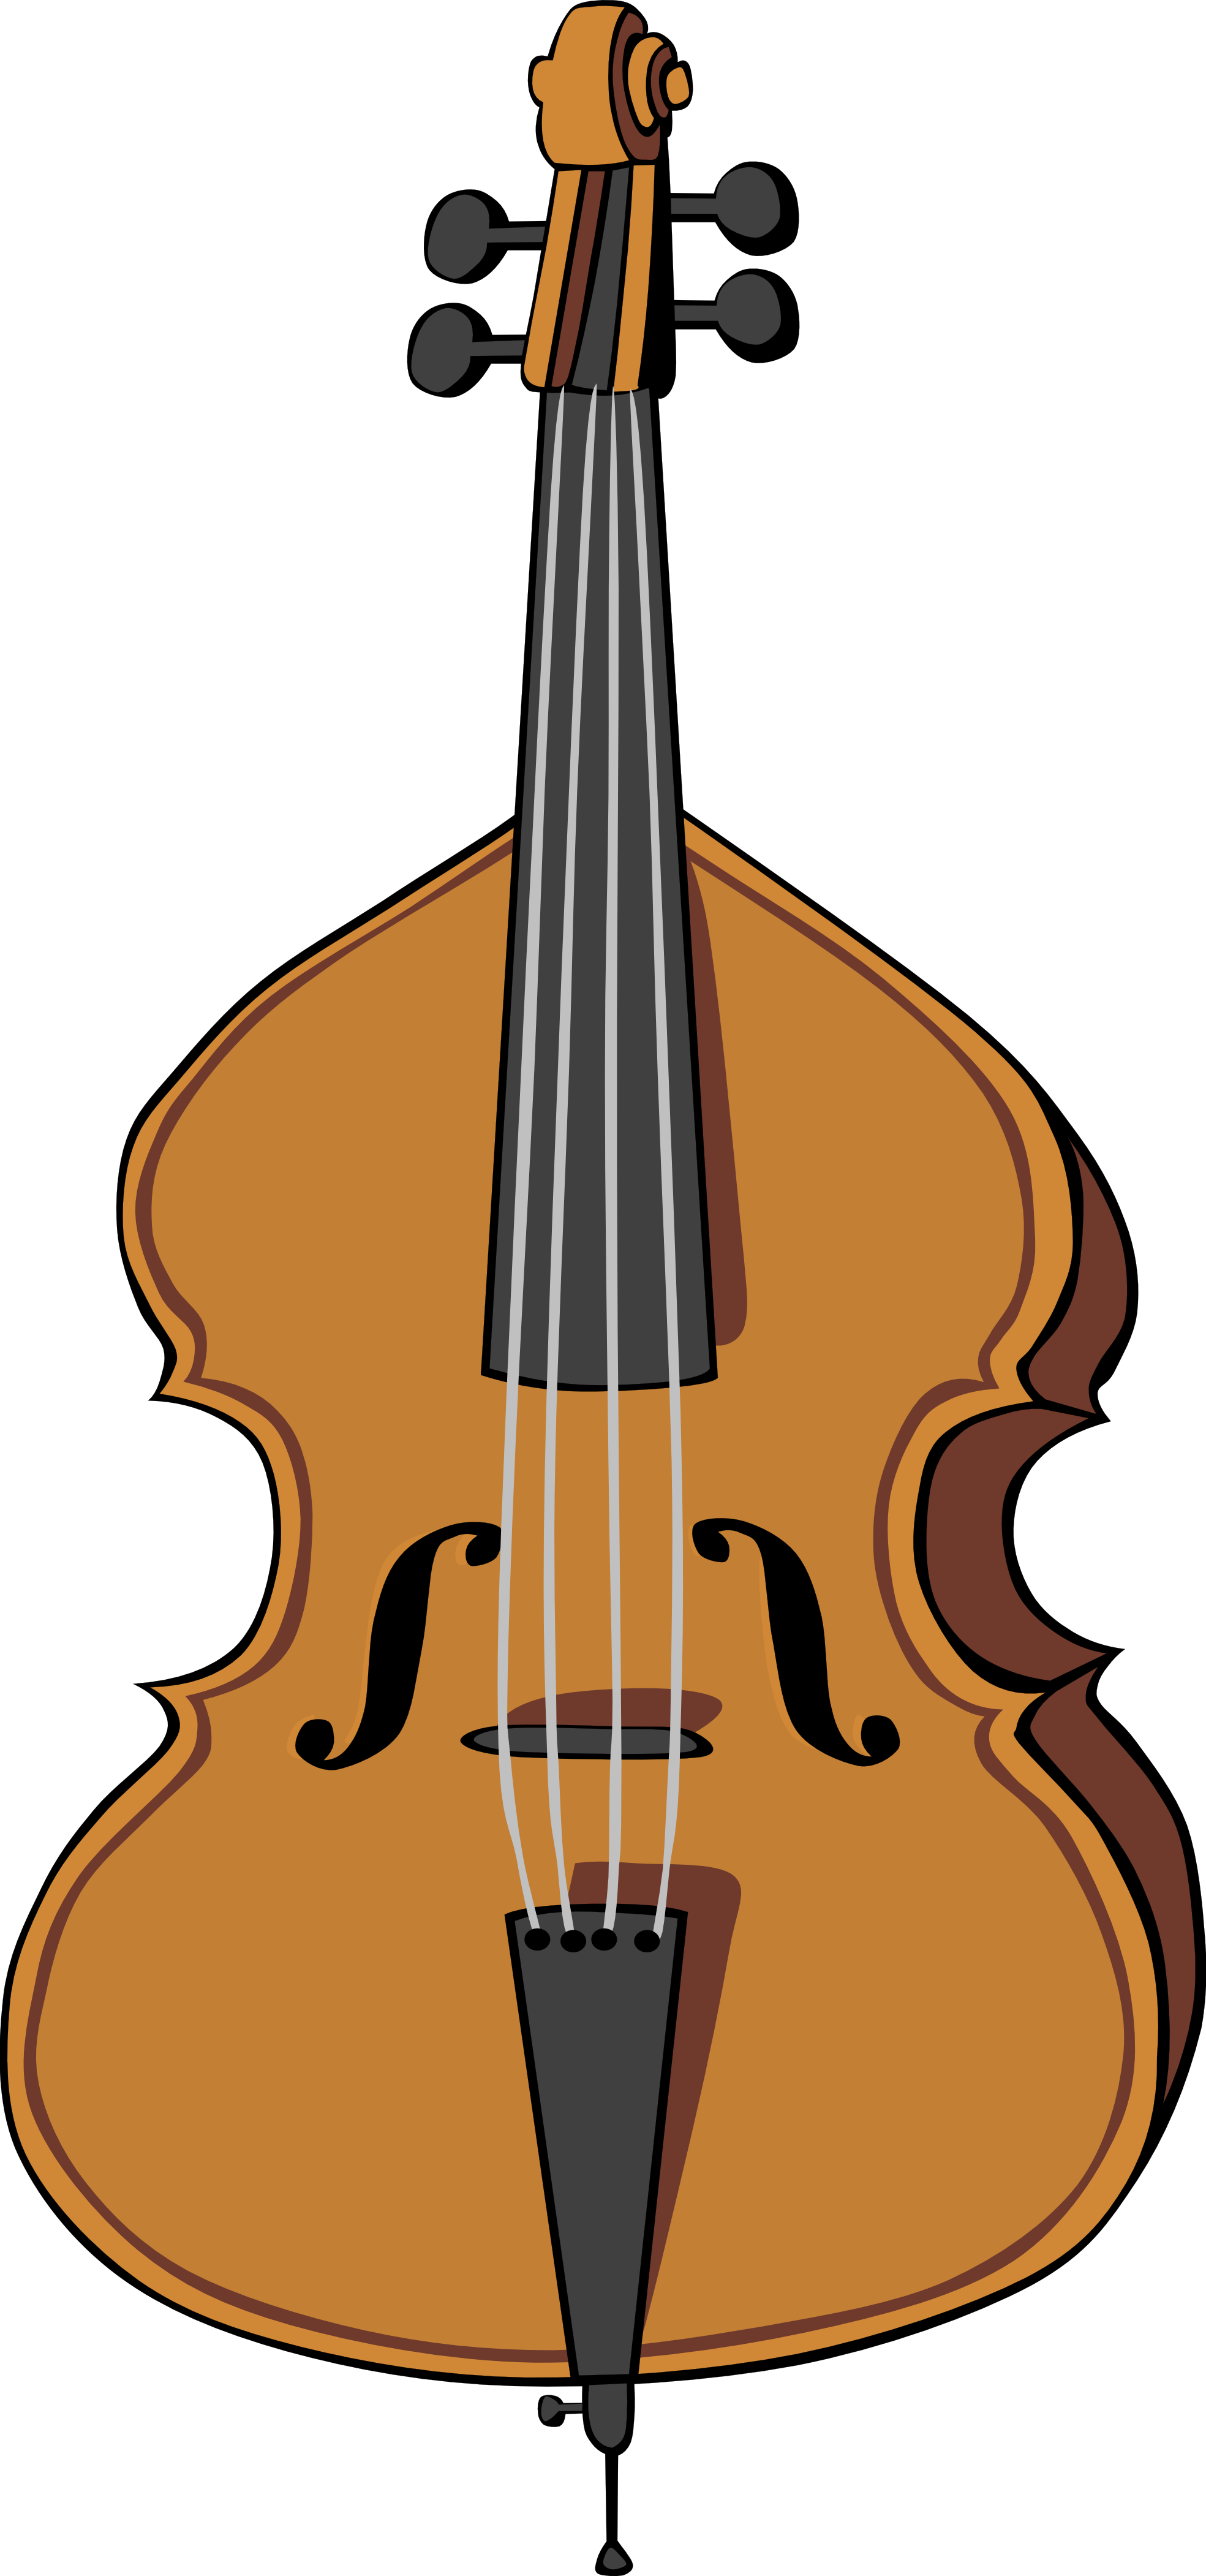 Cello clipart viola. Upright bass